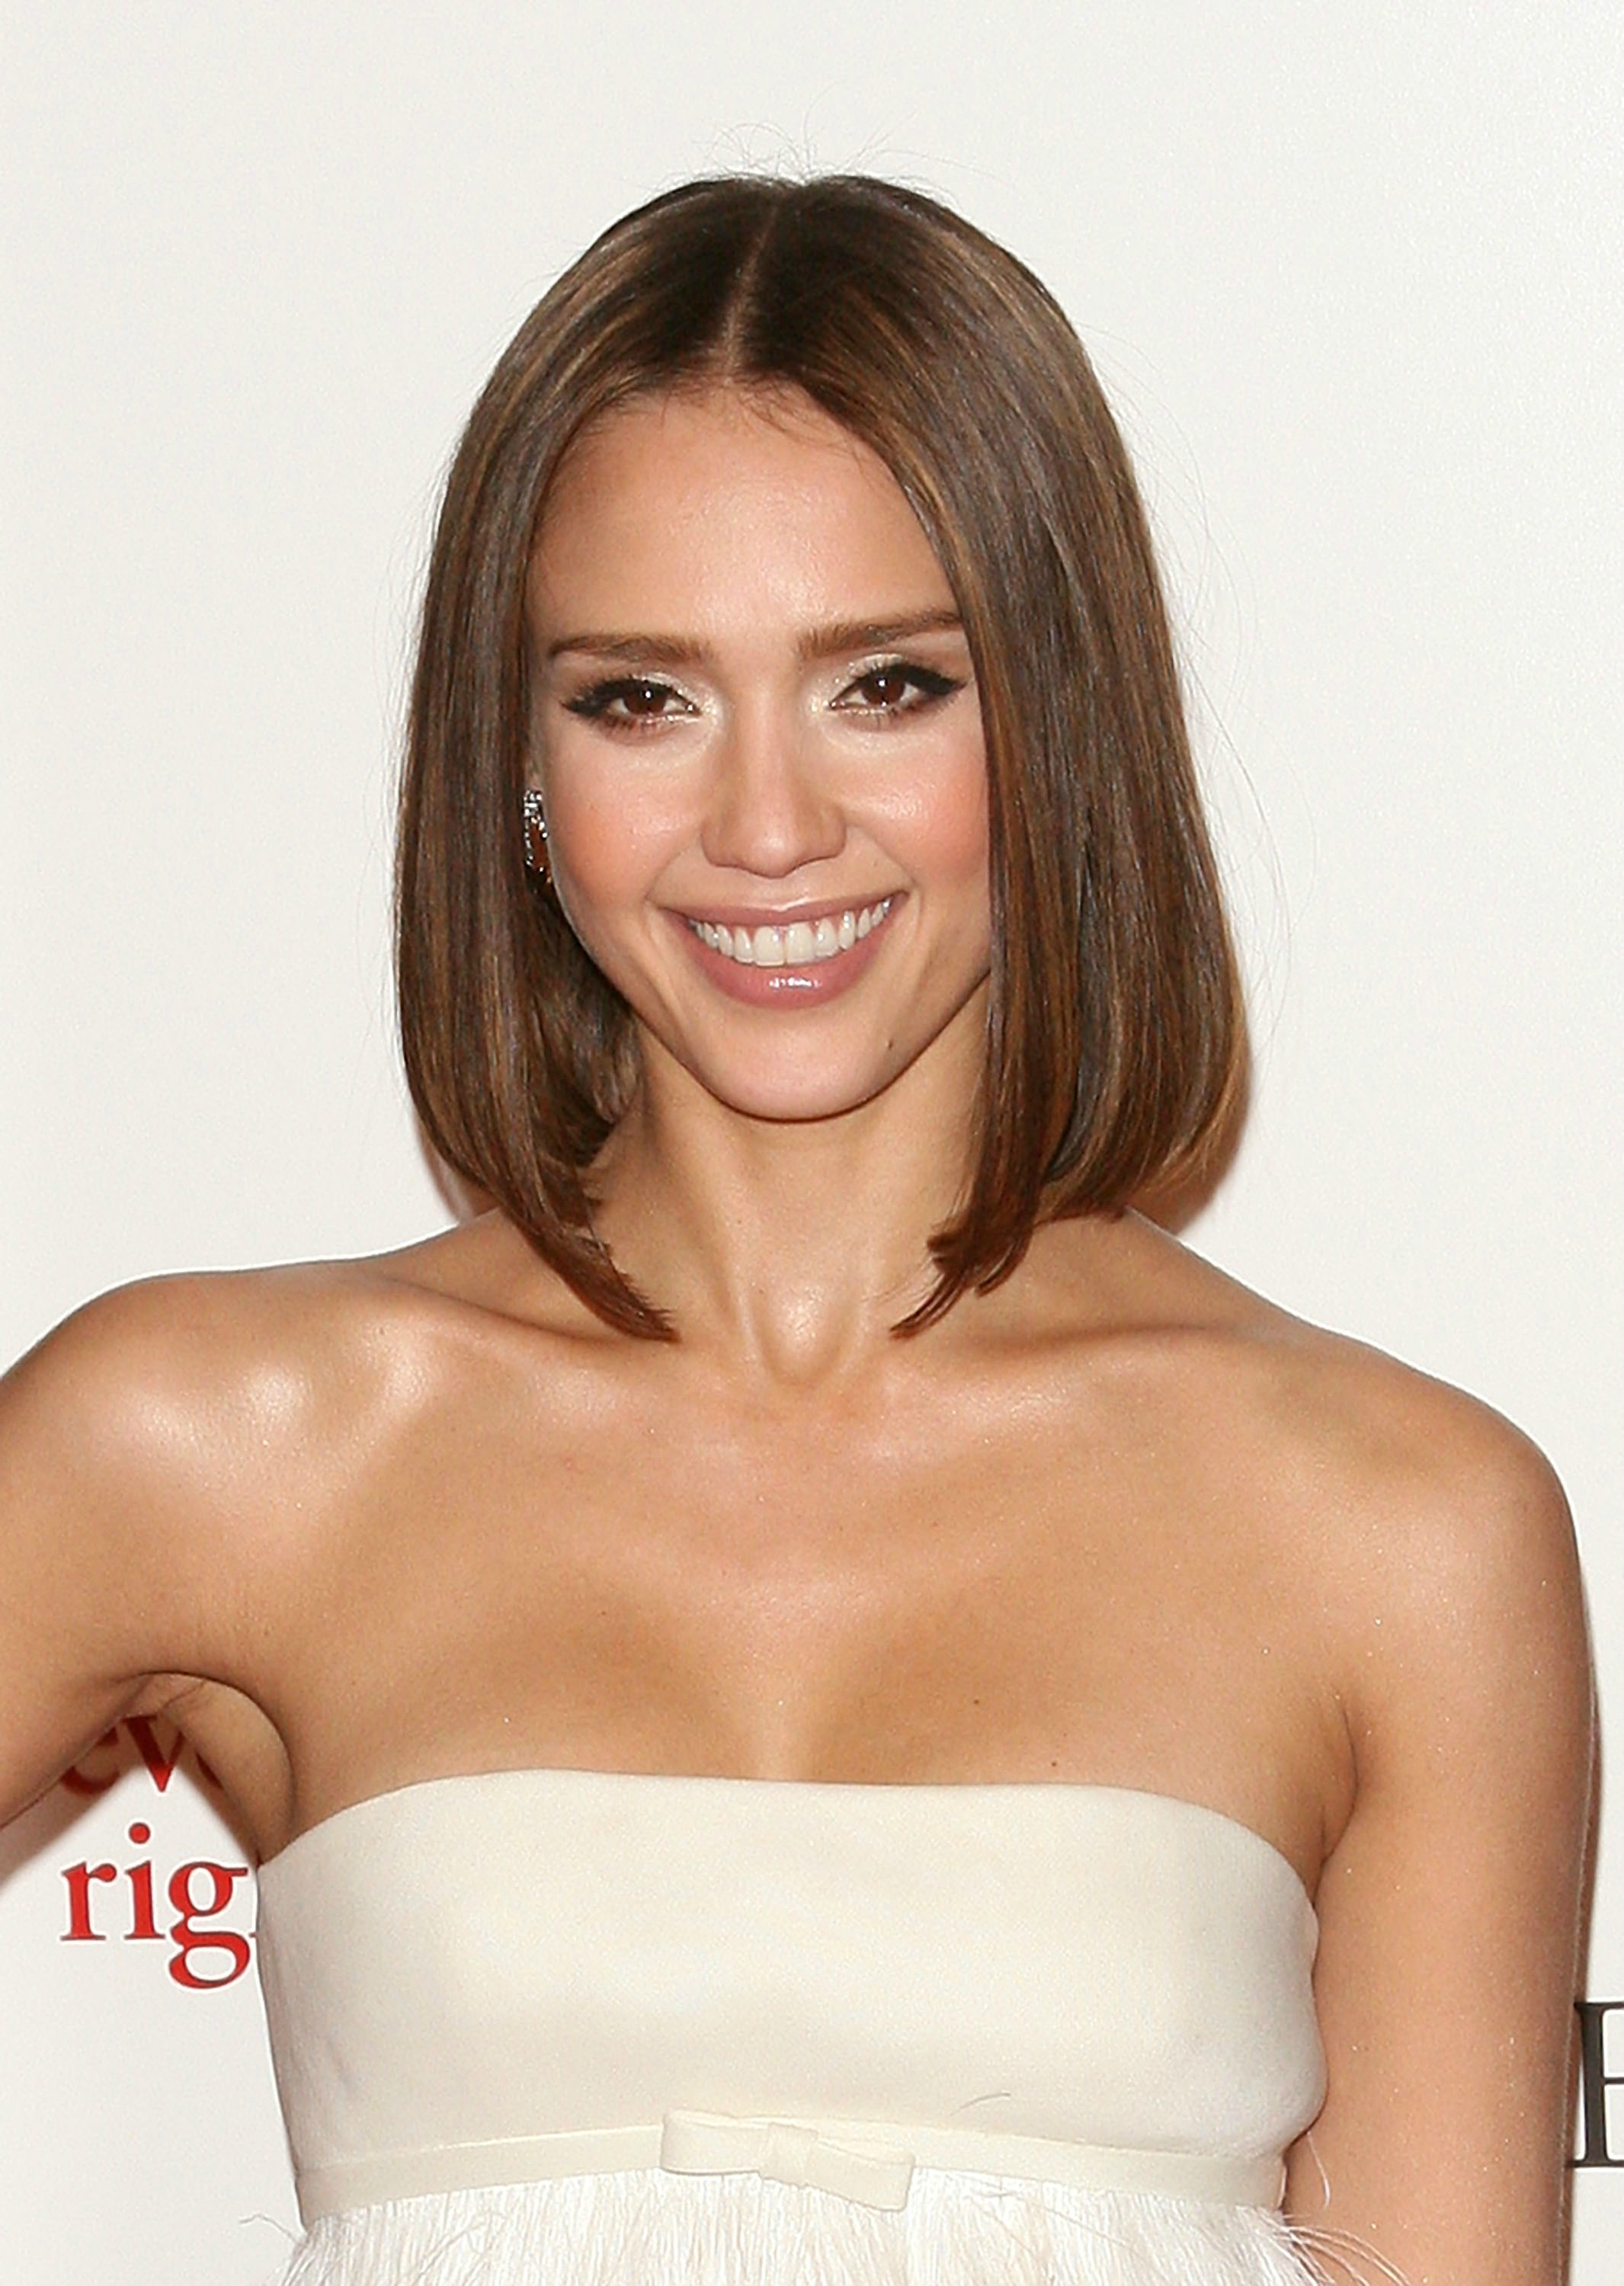 Terrific 50 Bob Haircuts And Hairstyles Inspired By Celebrities Bob Hairstyles For Women Draintrainus